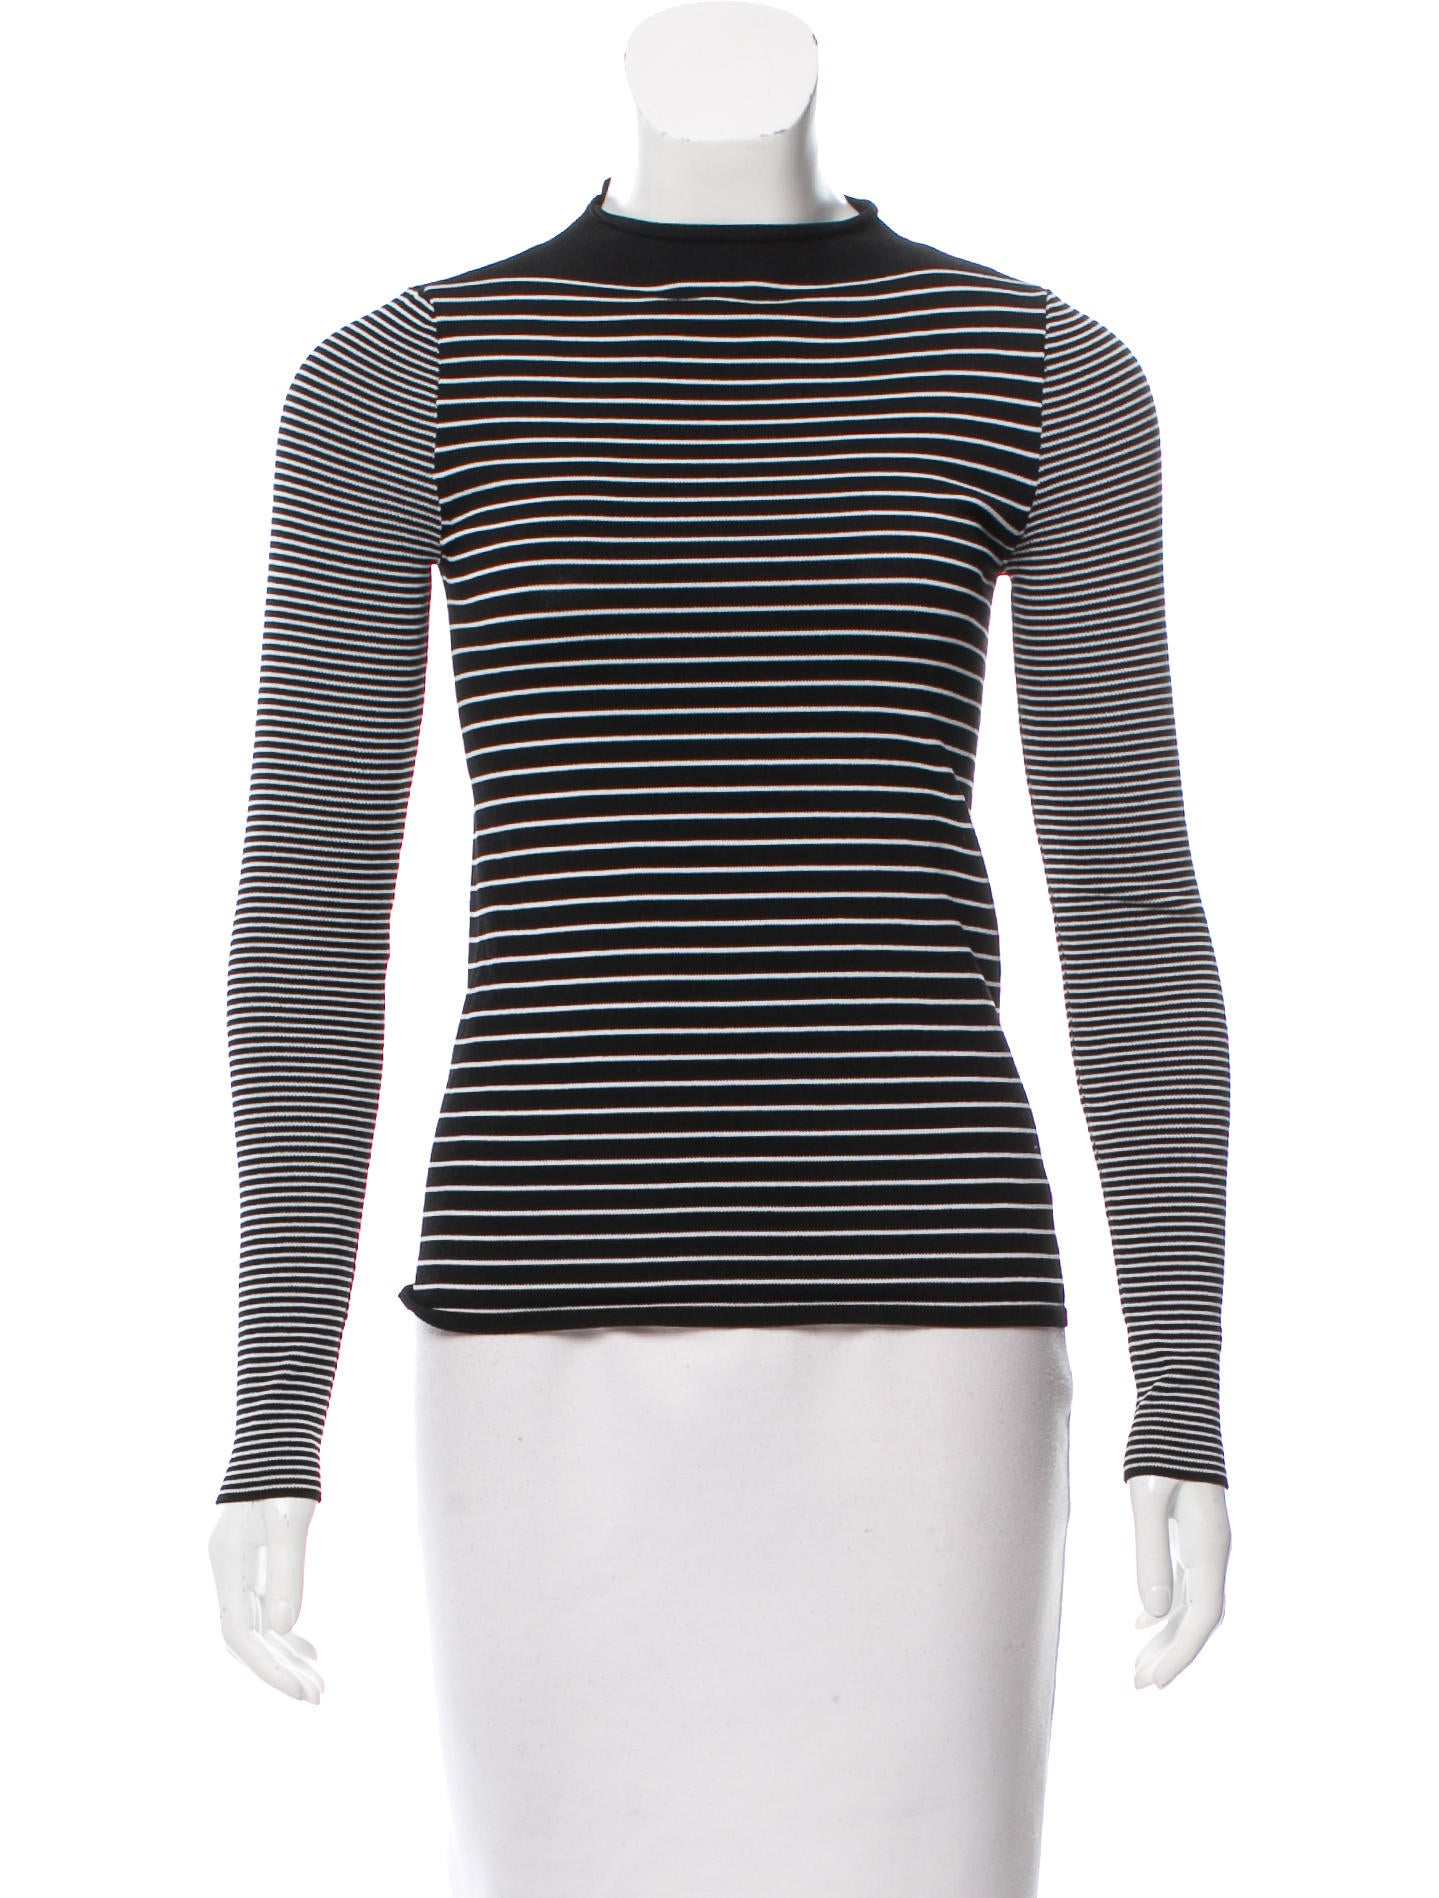 A fitted long-sleeved top with a ribbed rounded neck, striped to perfection in white and black. Have you ever met a top that hugs you just as much as you want to hug it back? You're welcome. In a size small the chest width is 80 cm and the length is 64 cm. The model is cm and is wearing a size S.